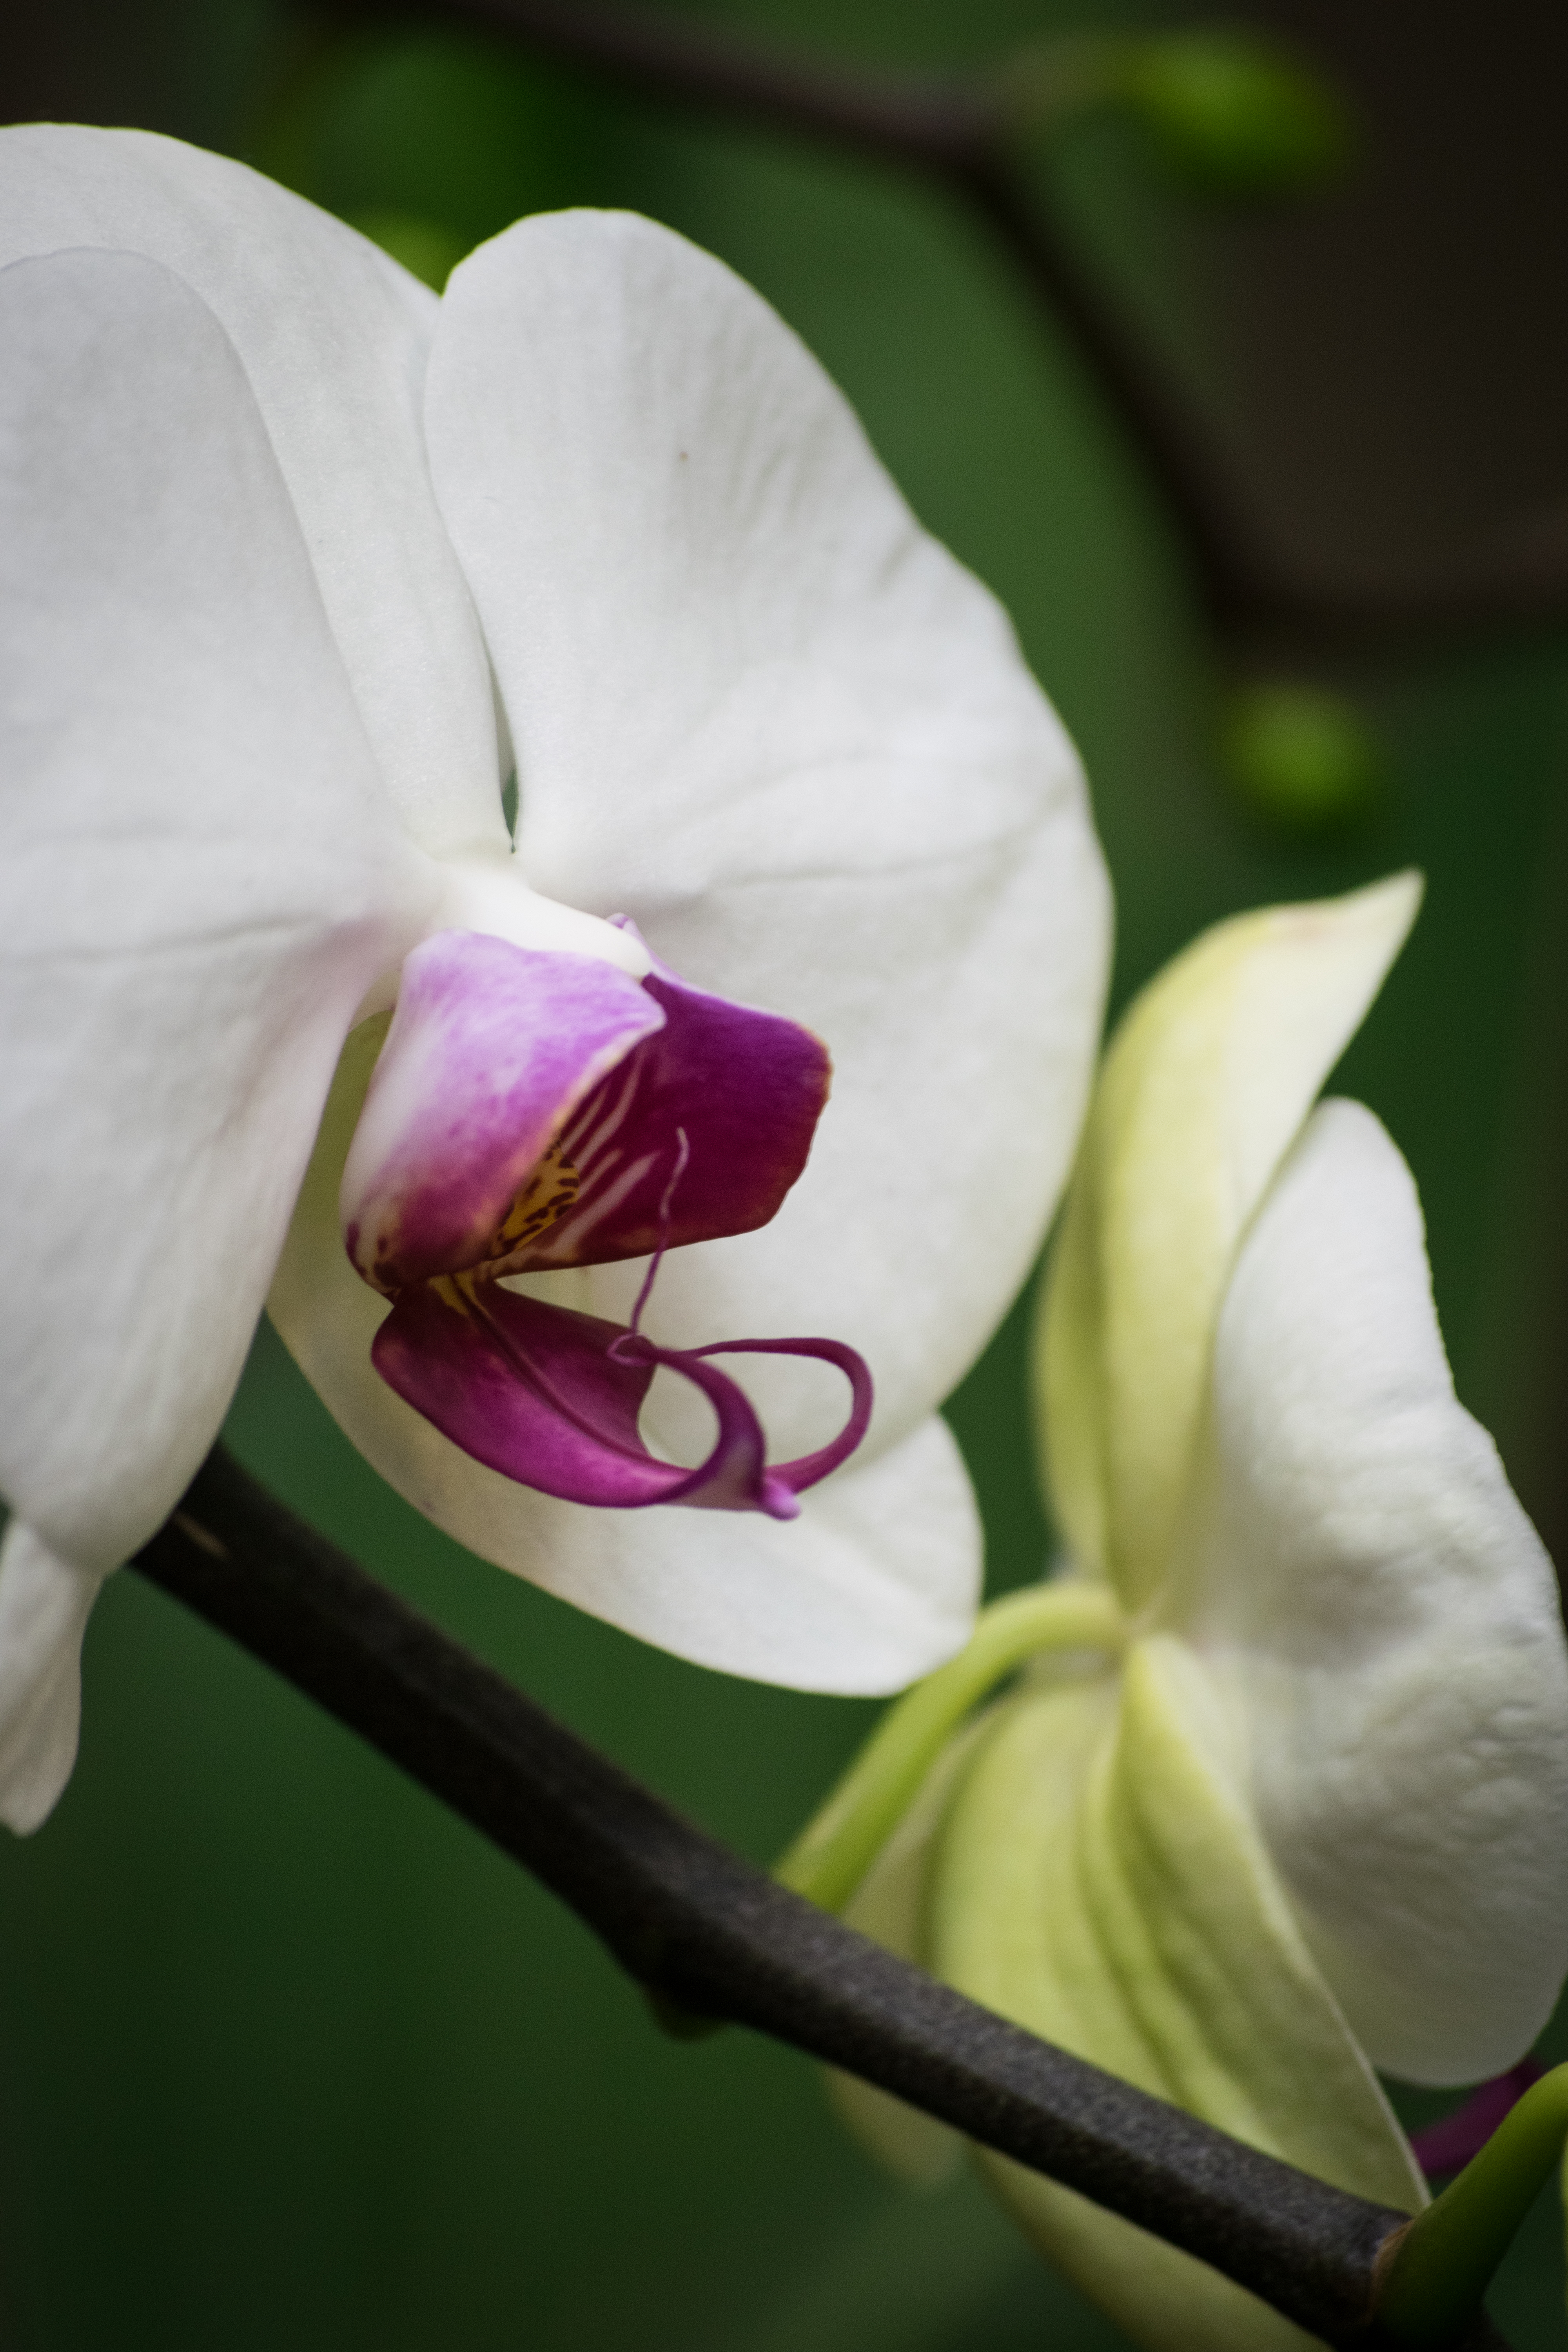 the orchid with the snake tongue